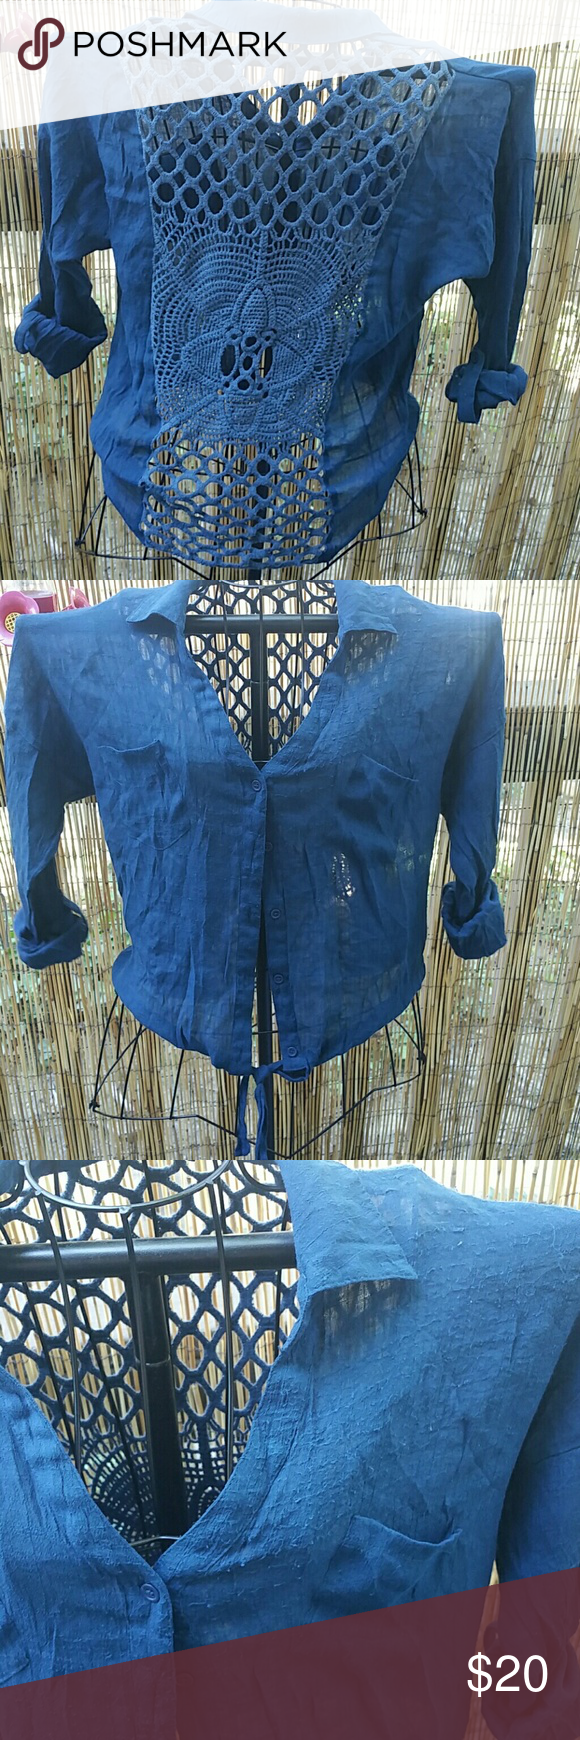 Boho hippie top Good condition, small pilling on top near shoulder Mine Tops